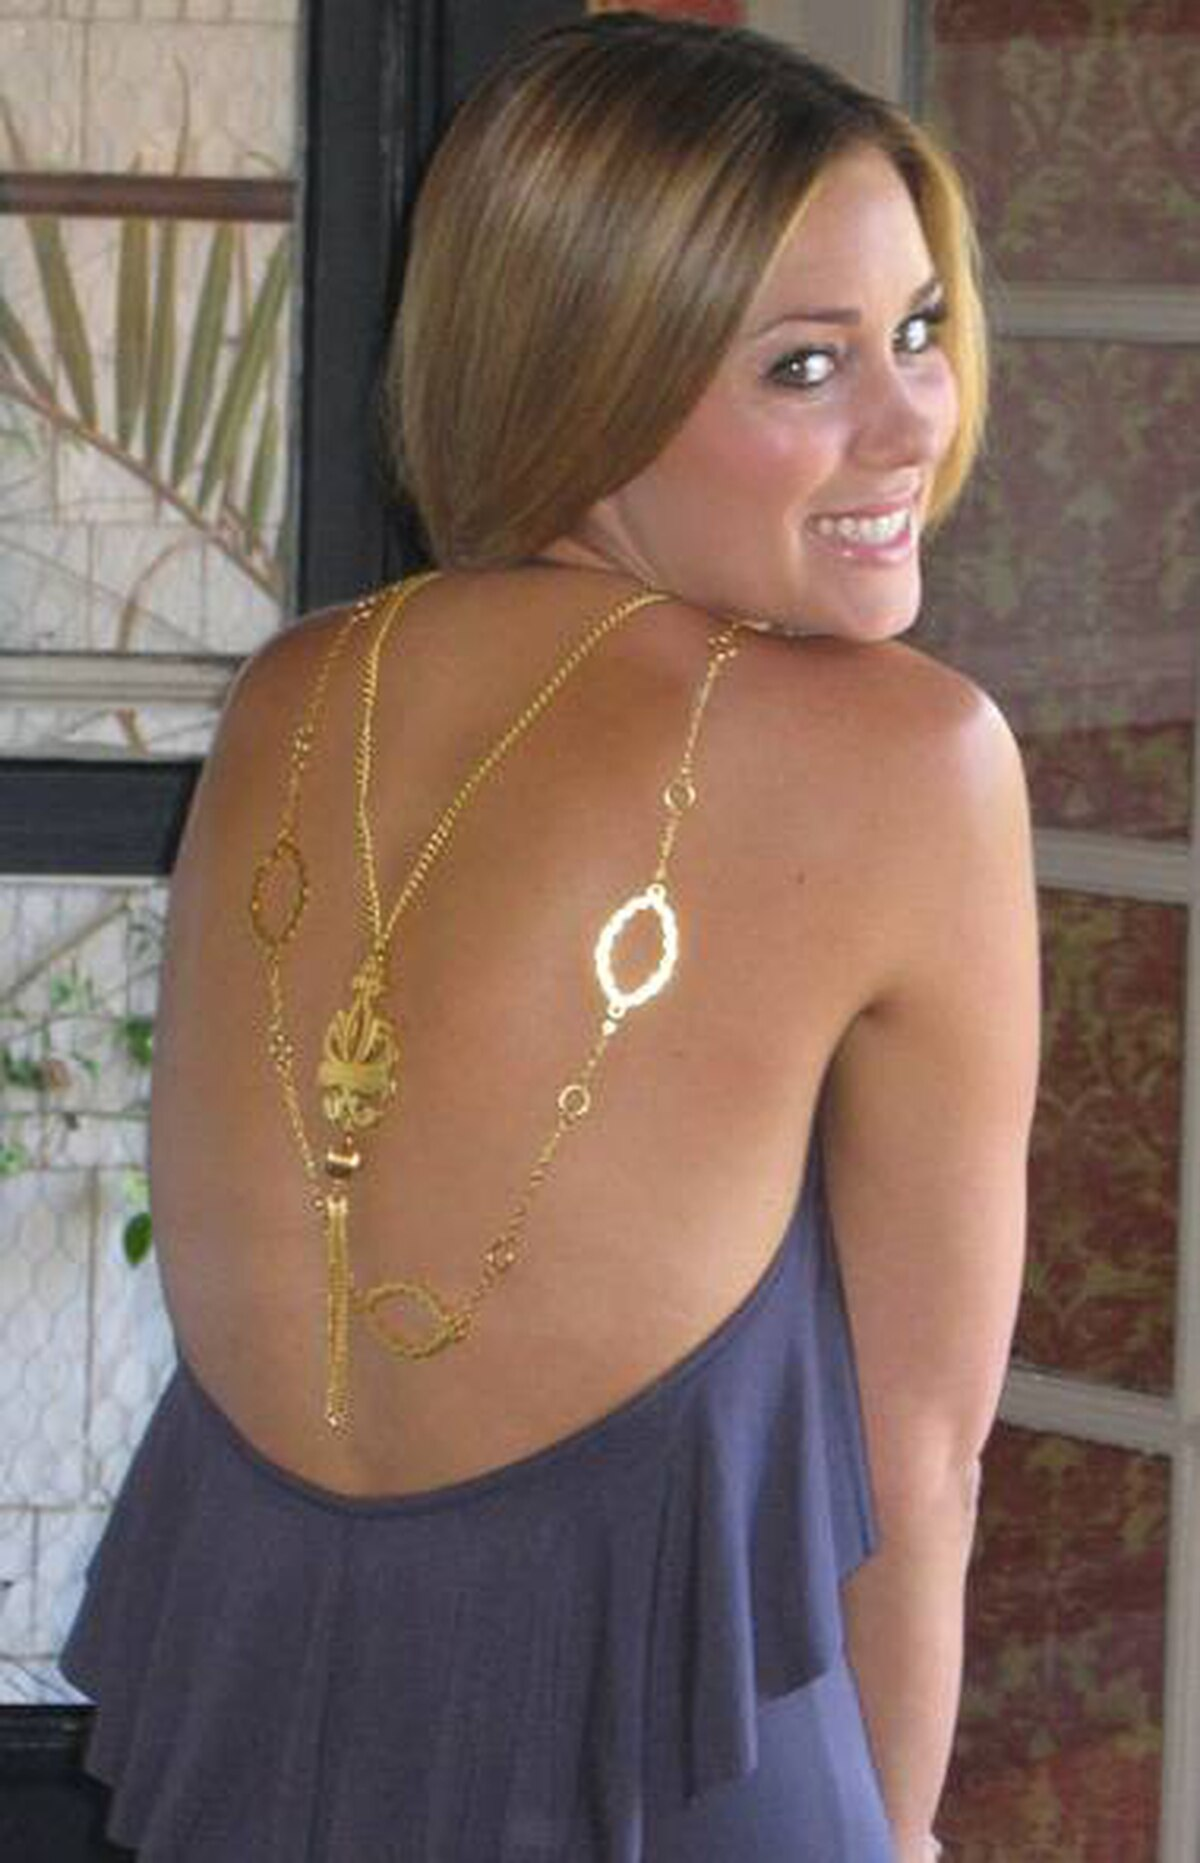 TV personality Lauren Conrad displays her Foxy Originals necklace.